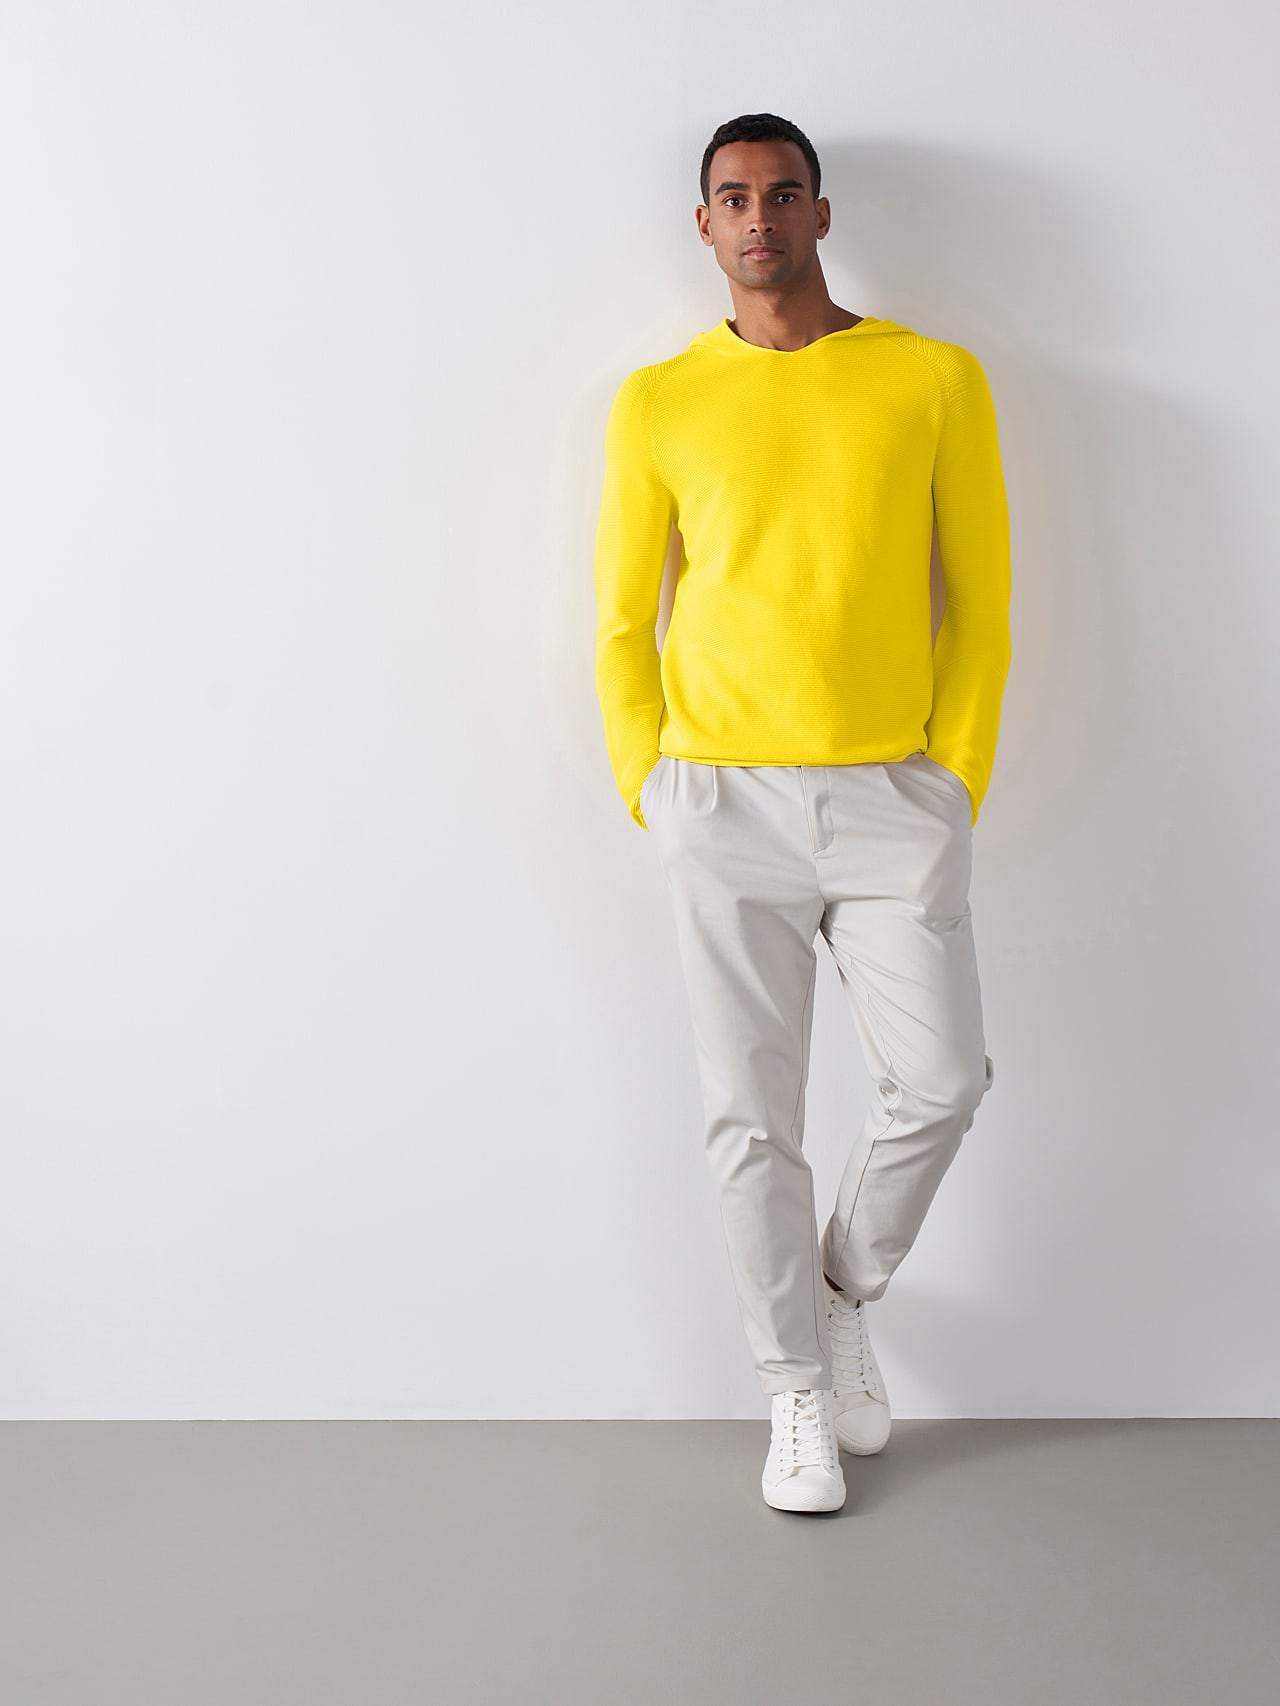 FURAP V3.Y5.01 Seamless Knit Hoodie yellow Front Alpha Tauri